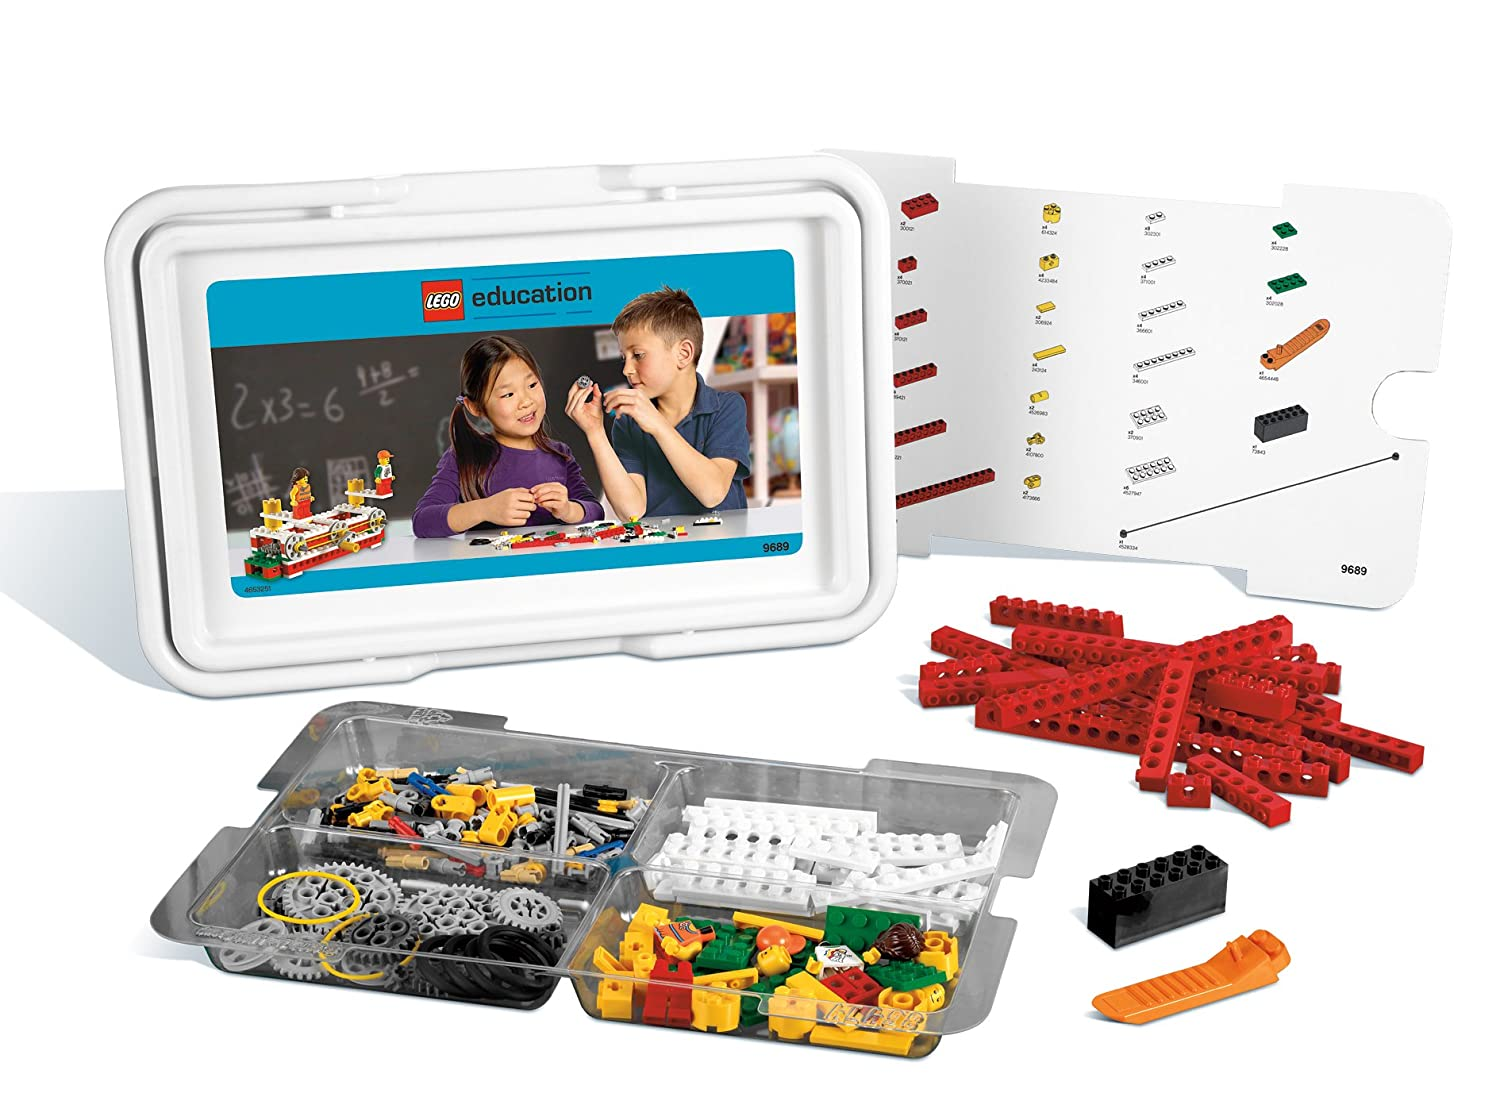 Kit LEGO mindstorms education